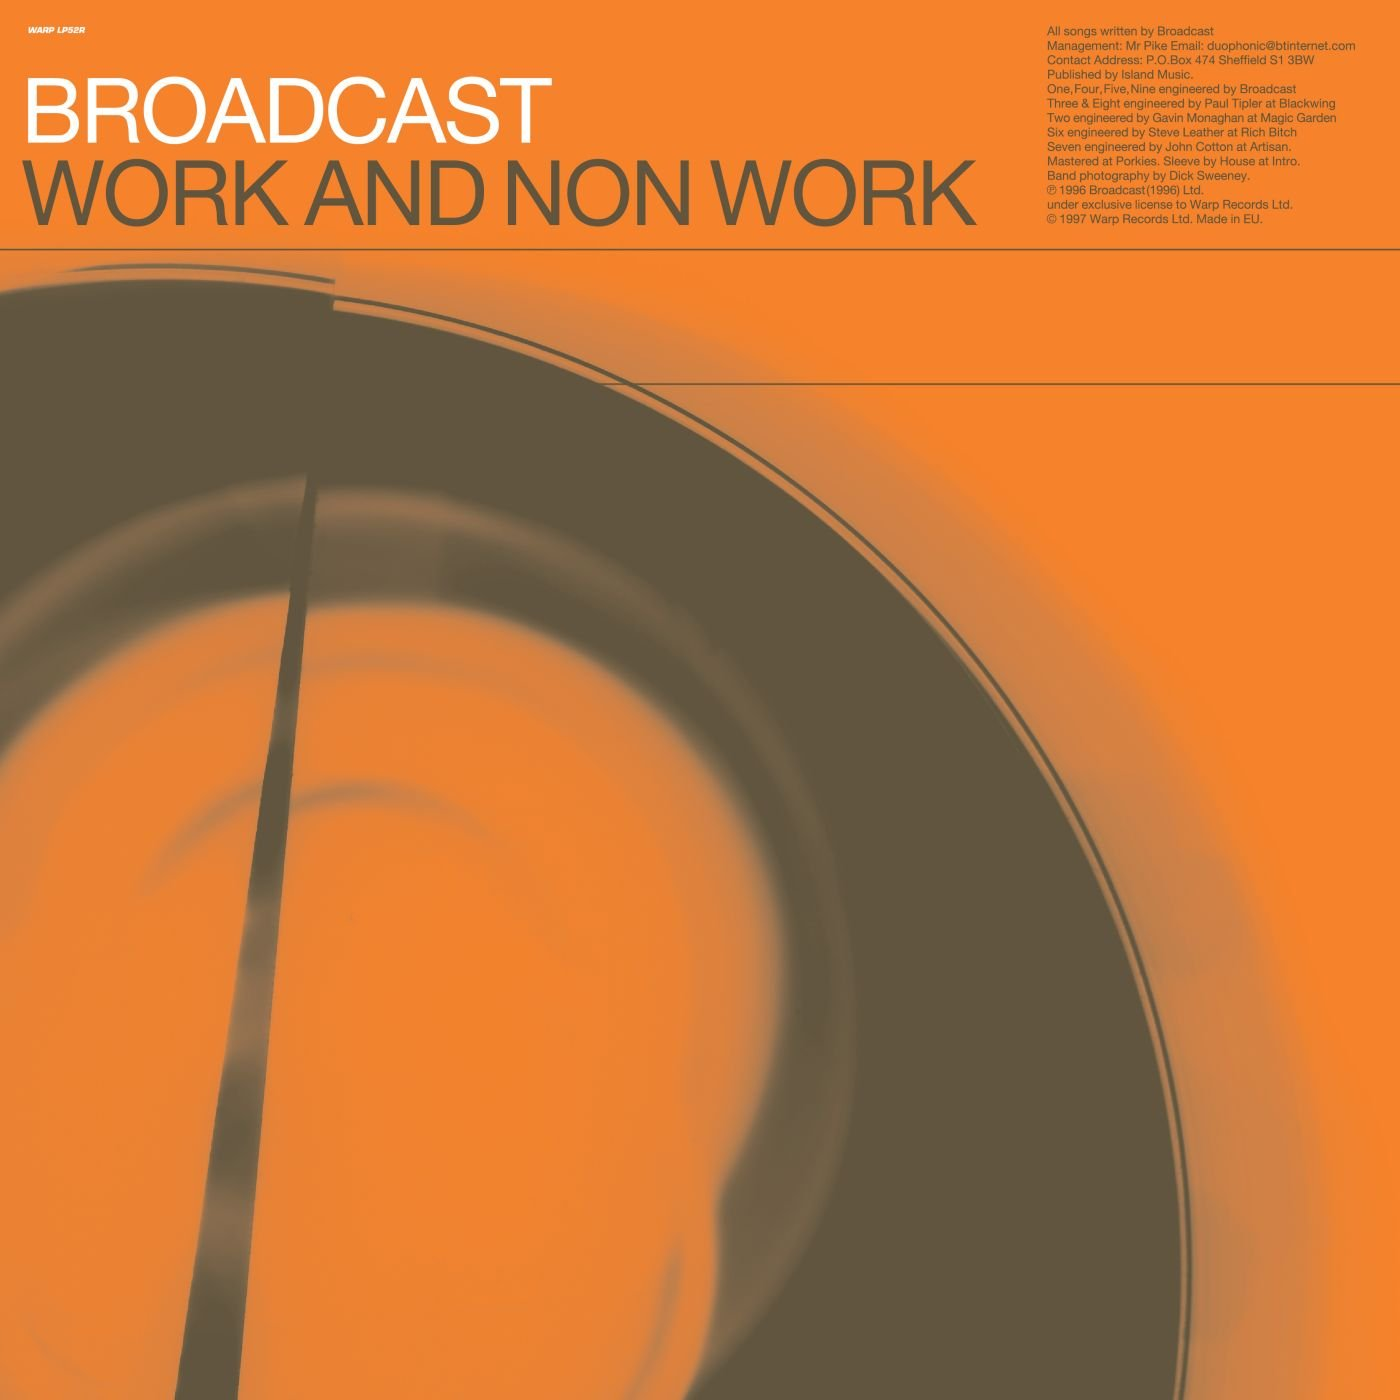 CD : The Broadcast - Work & Non-work (With Booklet, Jewel Case Packaging)